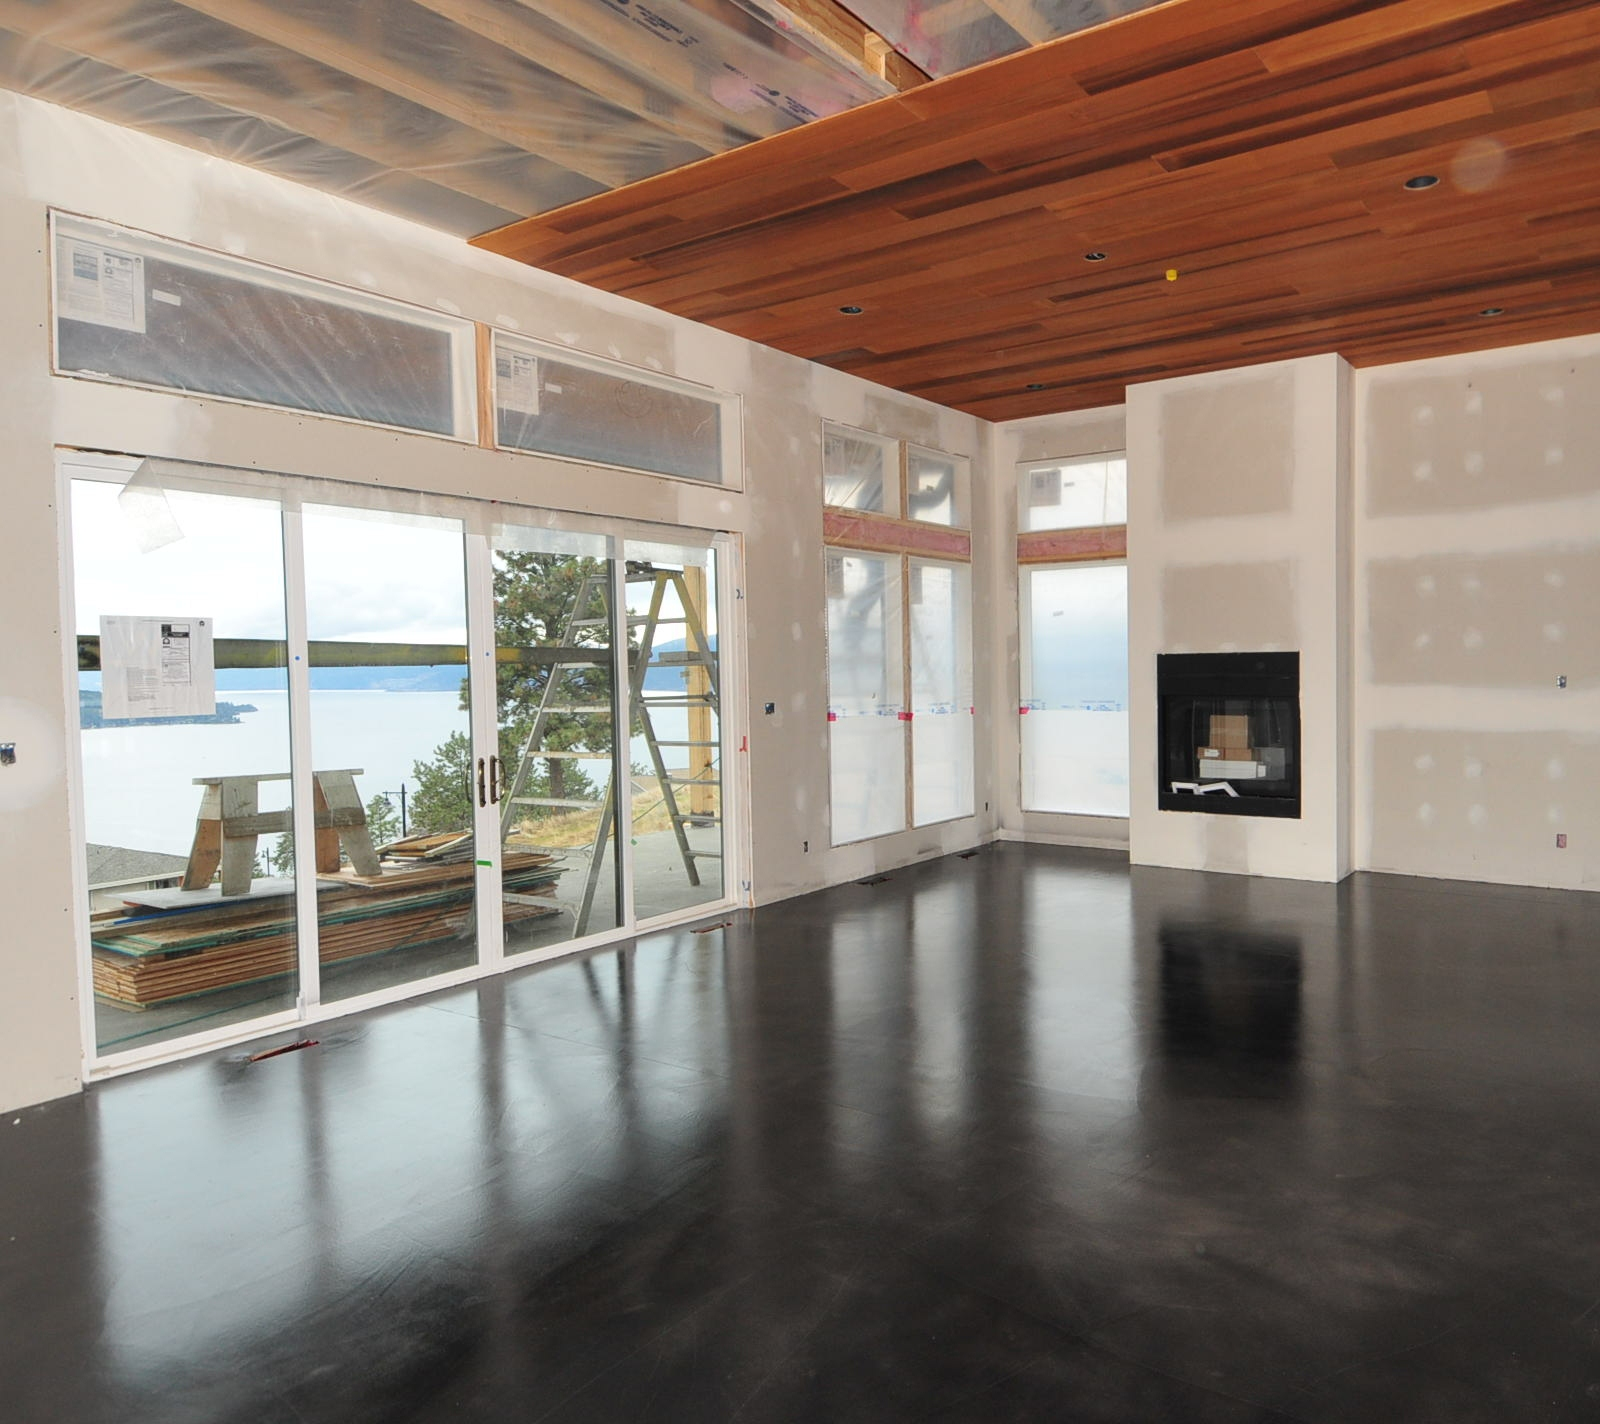 MODE CONCRETE Black Acid Stained Modern Concrete Floor Created In The Okan